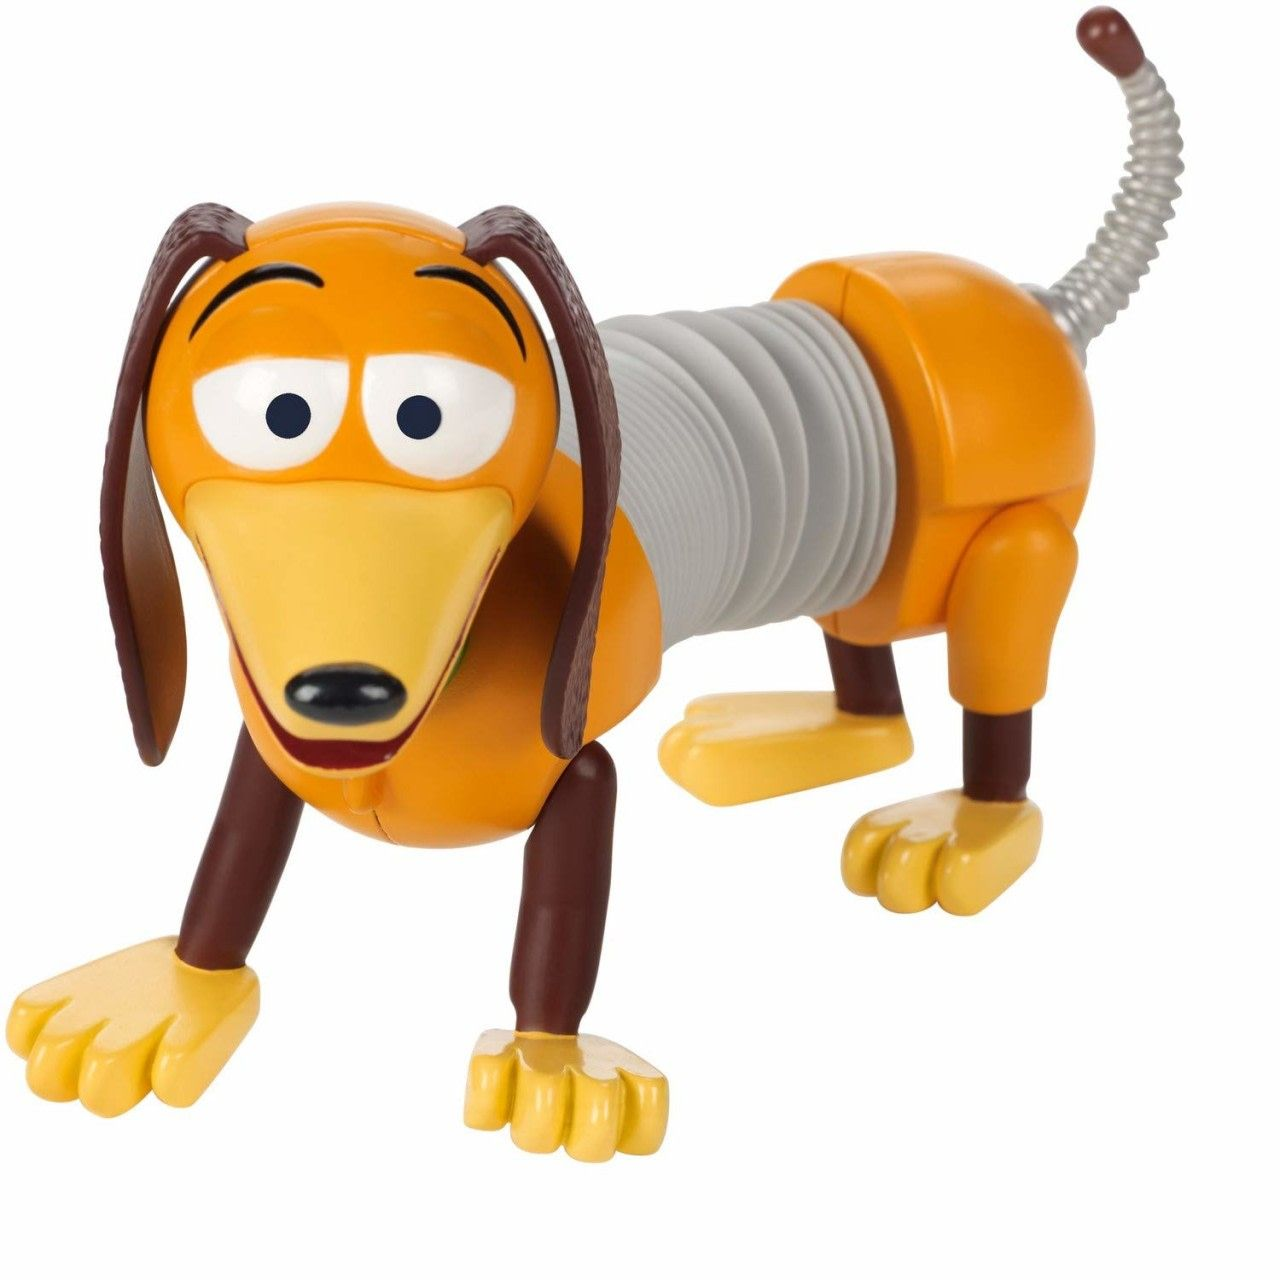 Slinky Toy Story 3 Google Search Tatuaje Toy Story Toy Story